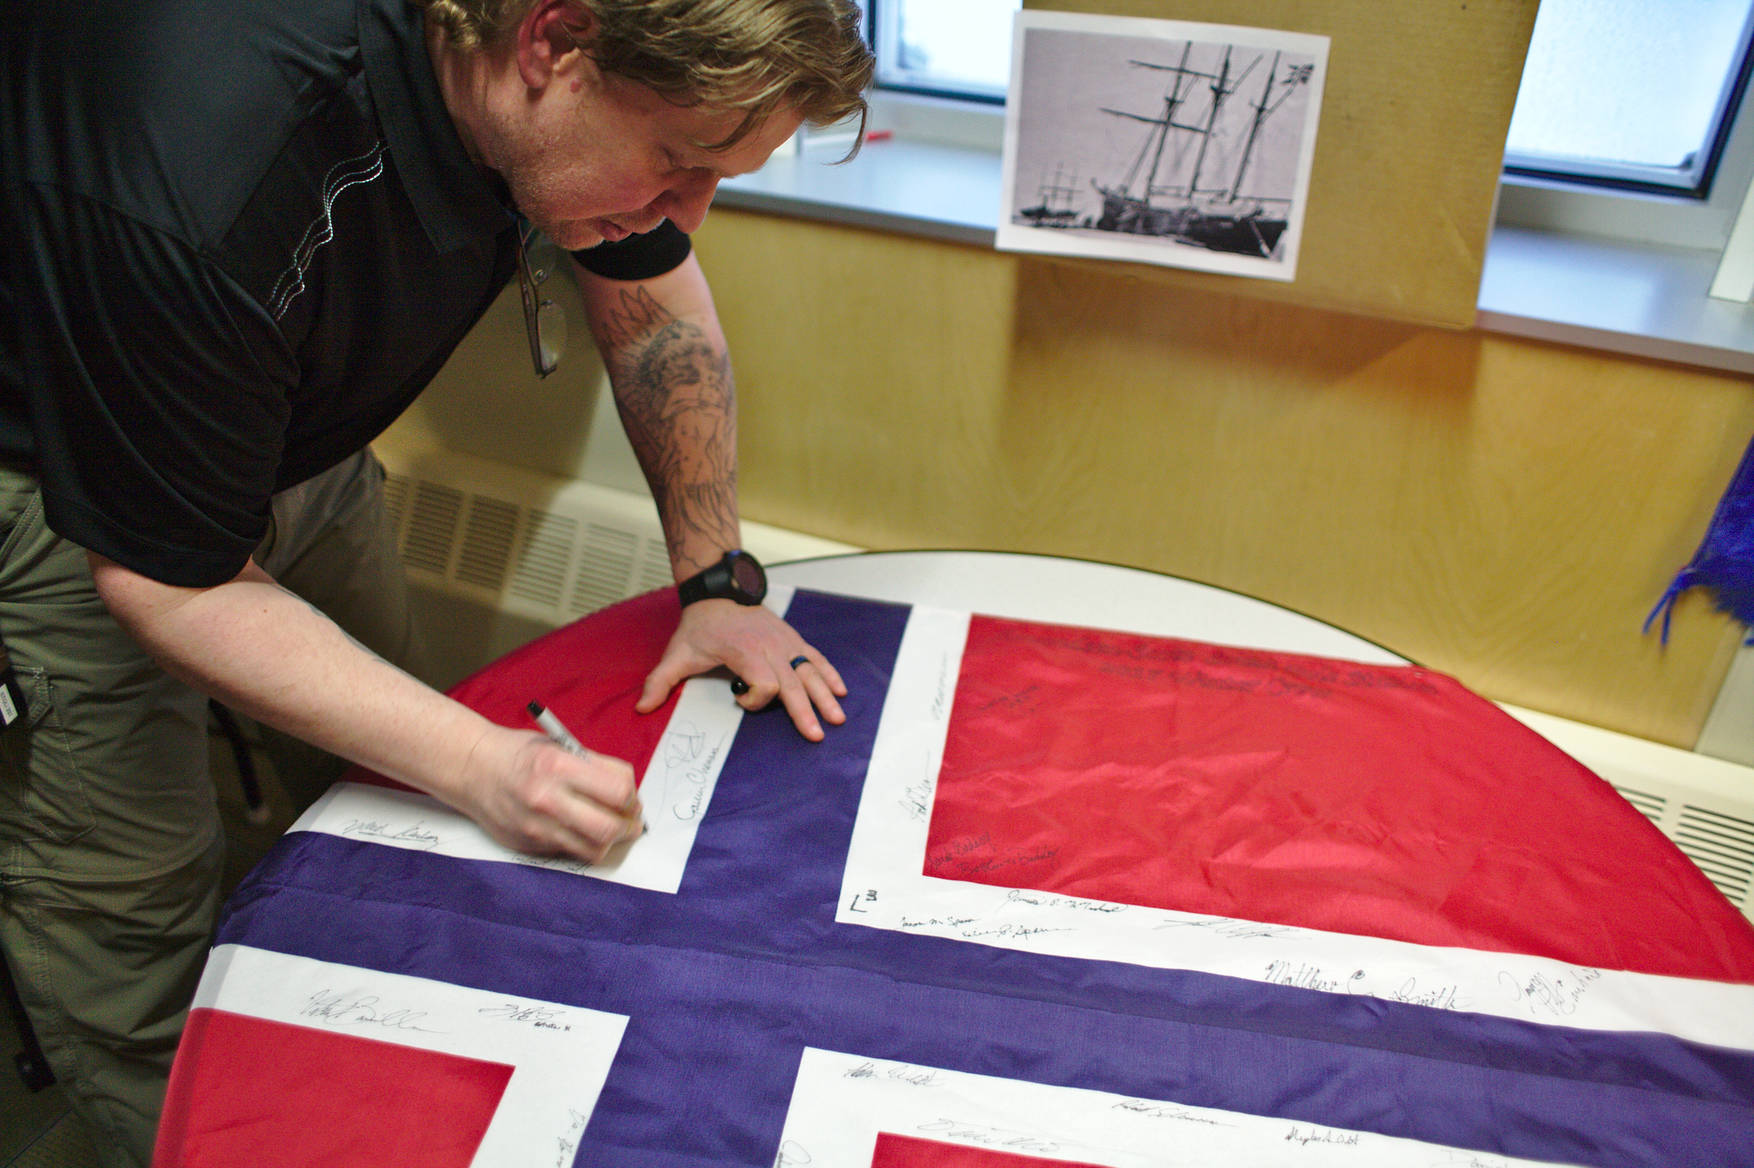 The Norwegian flag was signed by the station population. It will be taken to the polar exploration ship <em>Fram</em>, in commemoration of her use on Amundsen's 1910-12 south pole expedition (picture in the background).